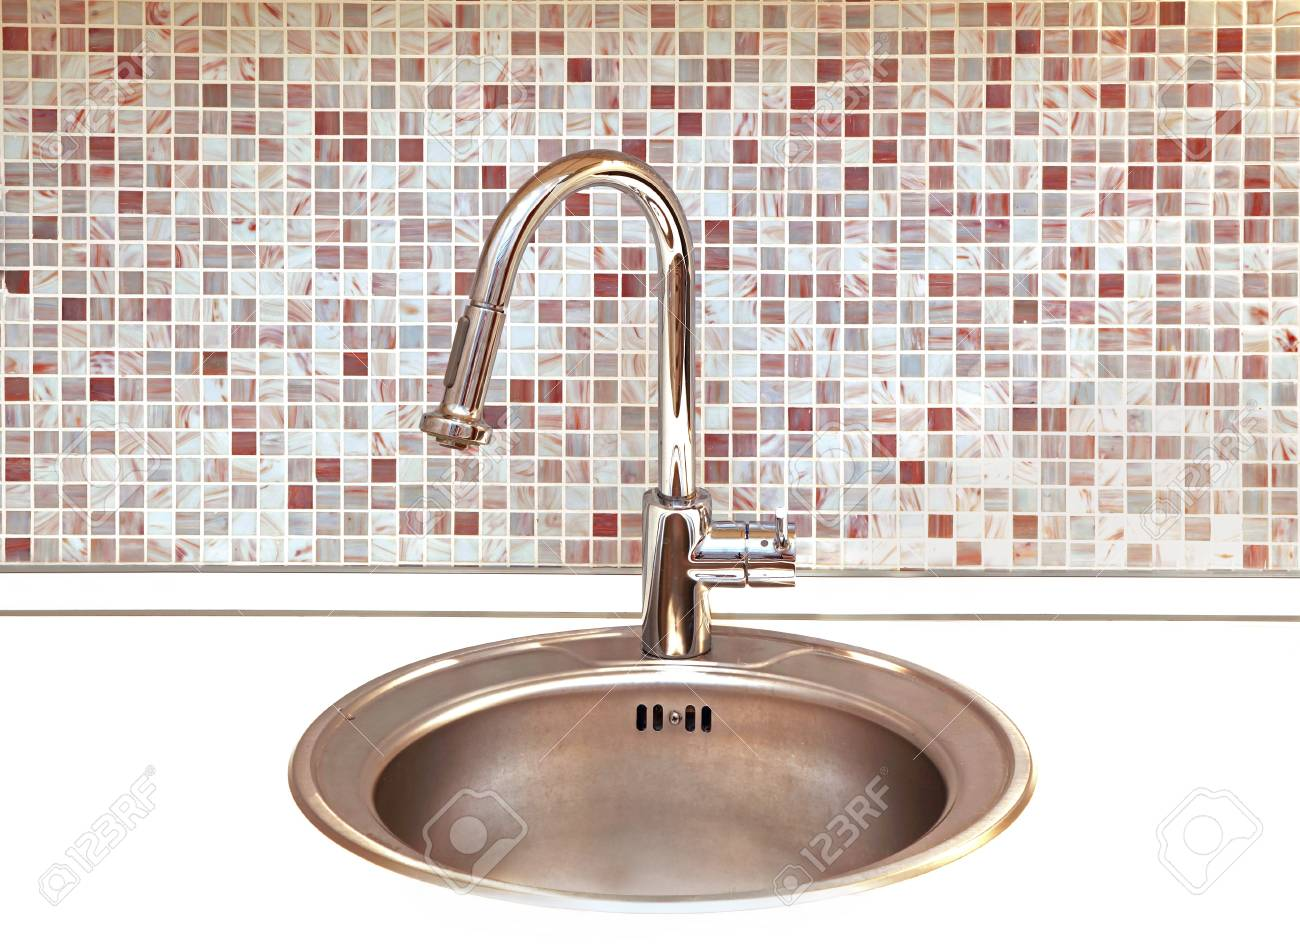 Modern kitchen faucet with mosaic tiles in background